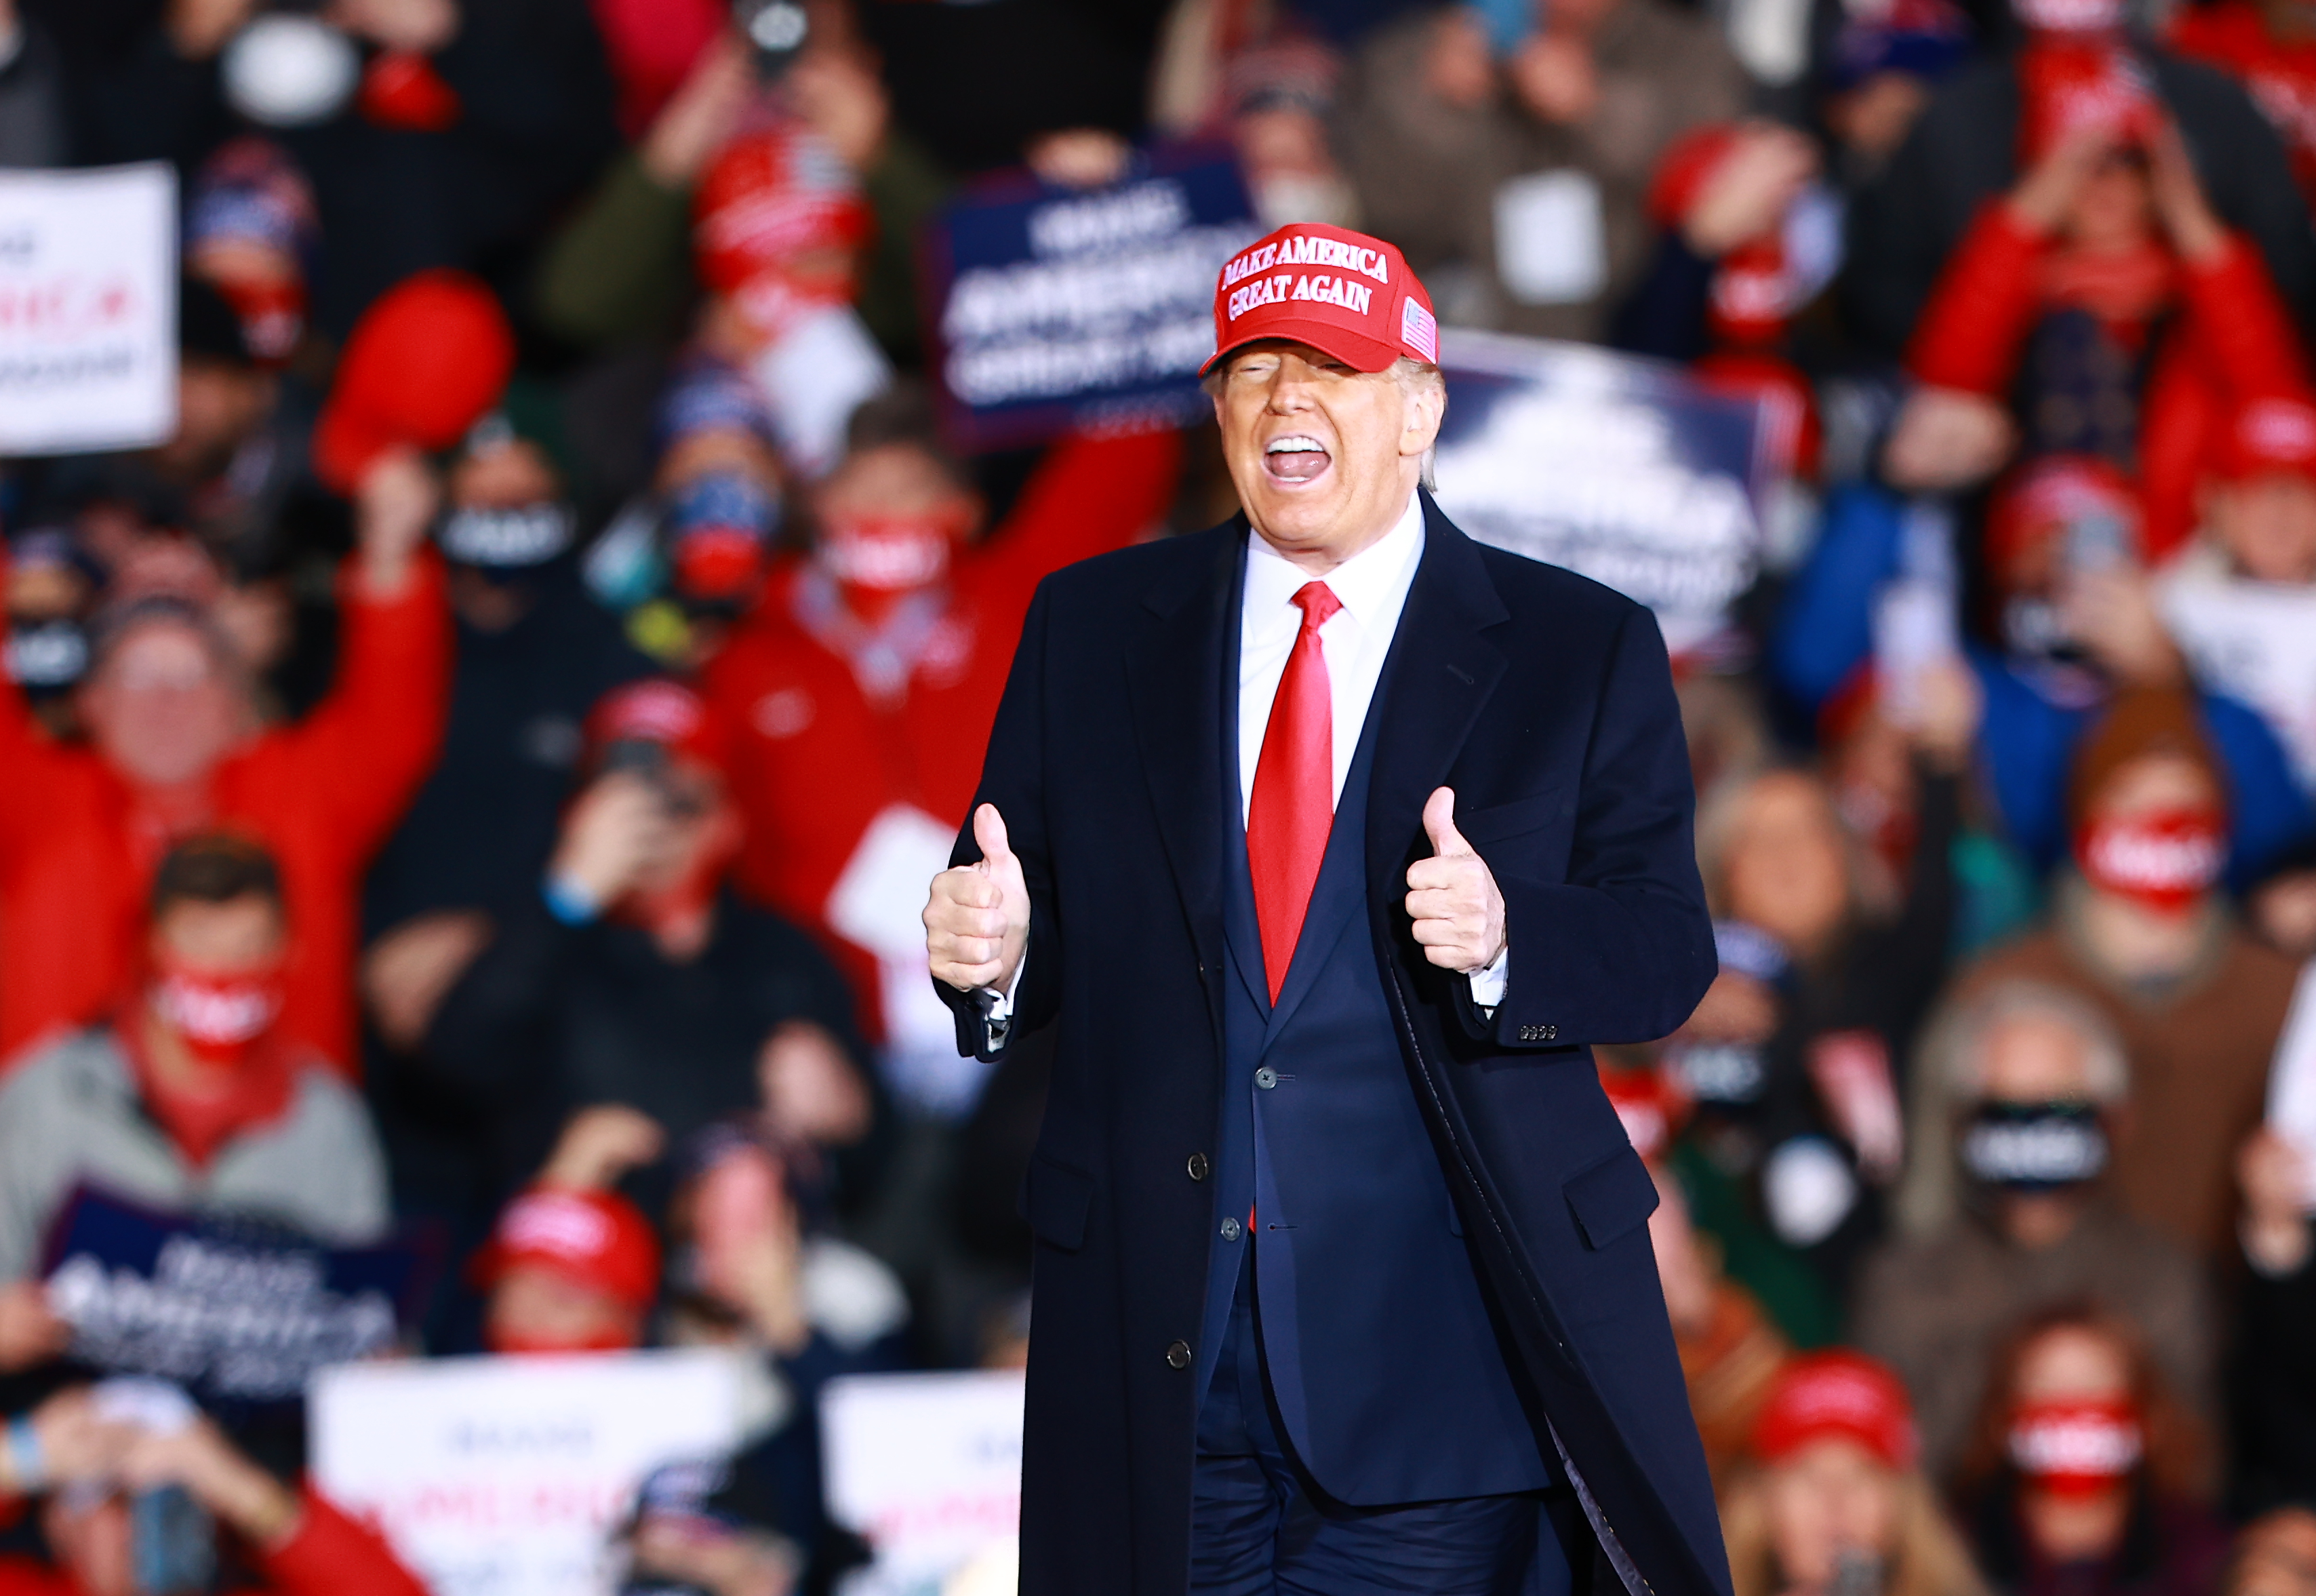 President Trump, gesturing and speaking, wears a red MAGA hat, a navy blue suit, and a dark overcoat in front of a crowd of his supporters.